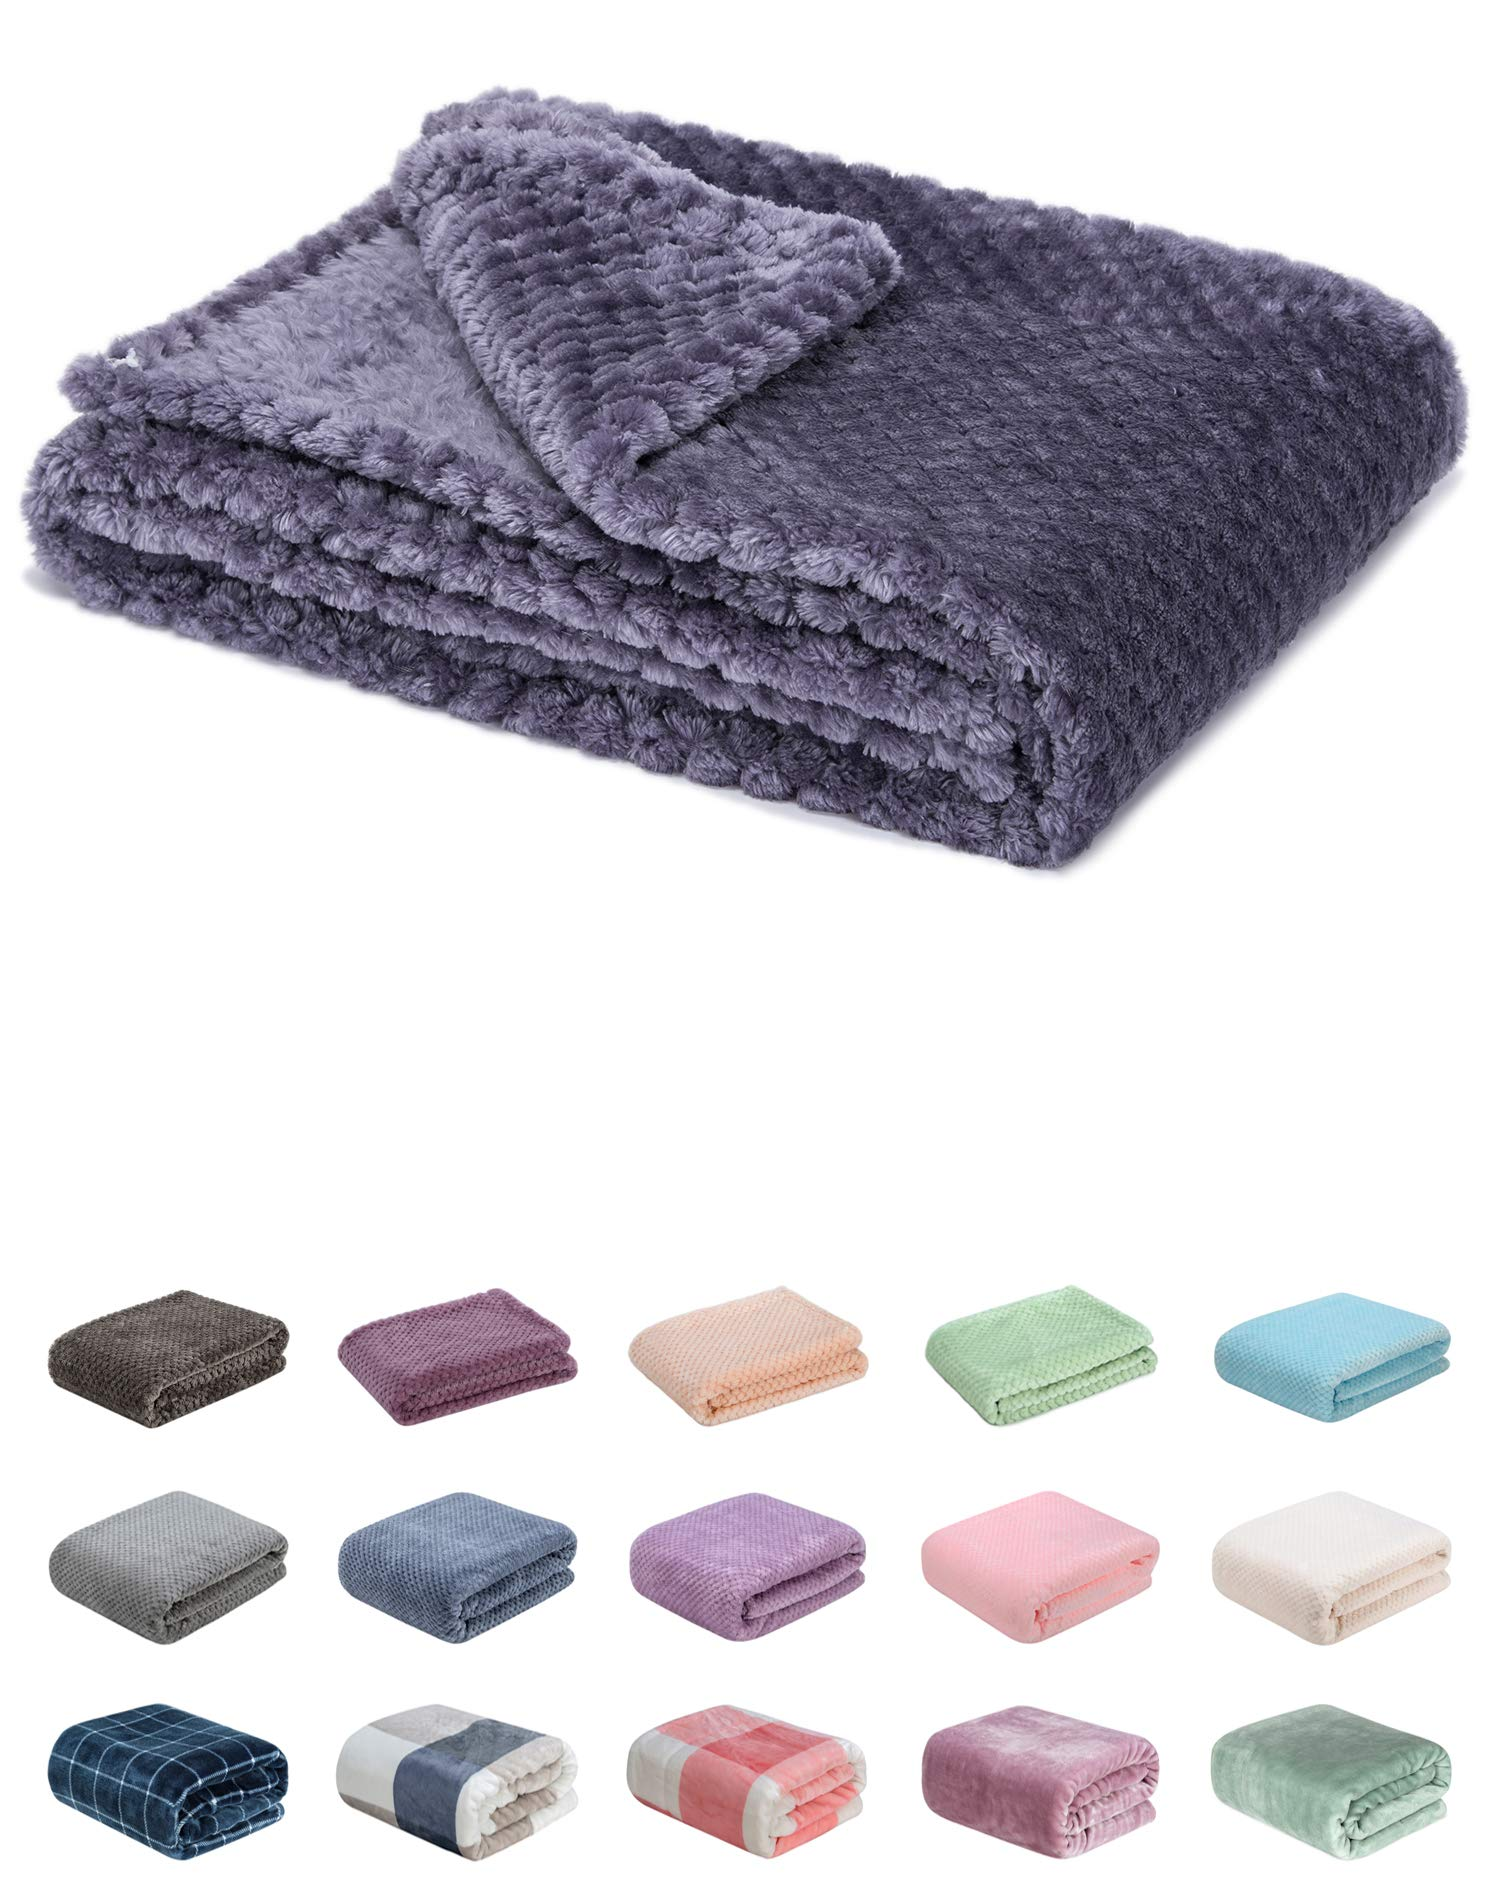 Fuzzy Blanket or Fluffy Blanket for Baby Girl or boy, Soft Warm Cozy Coral Fleece Toddler, Infant or Newborn Receiving Blanket for Crib, Stroller, Travel, Decorative (28Wx40L, XS-Grape Purple)